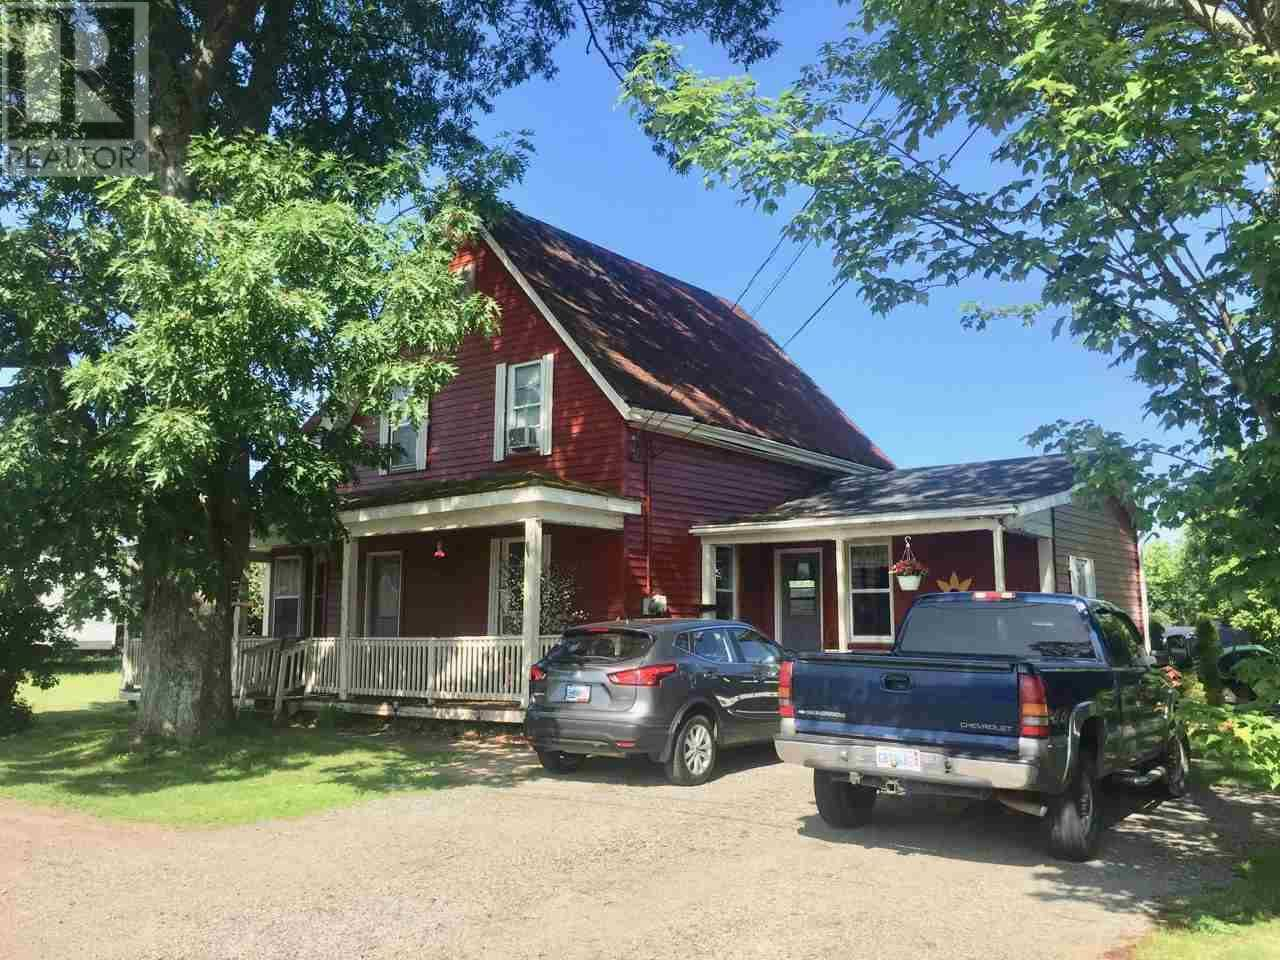 House for sale at 461 Station St Oxford Nova Scotia - MLS: 201916549